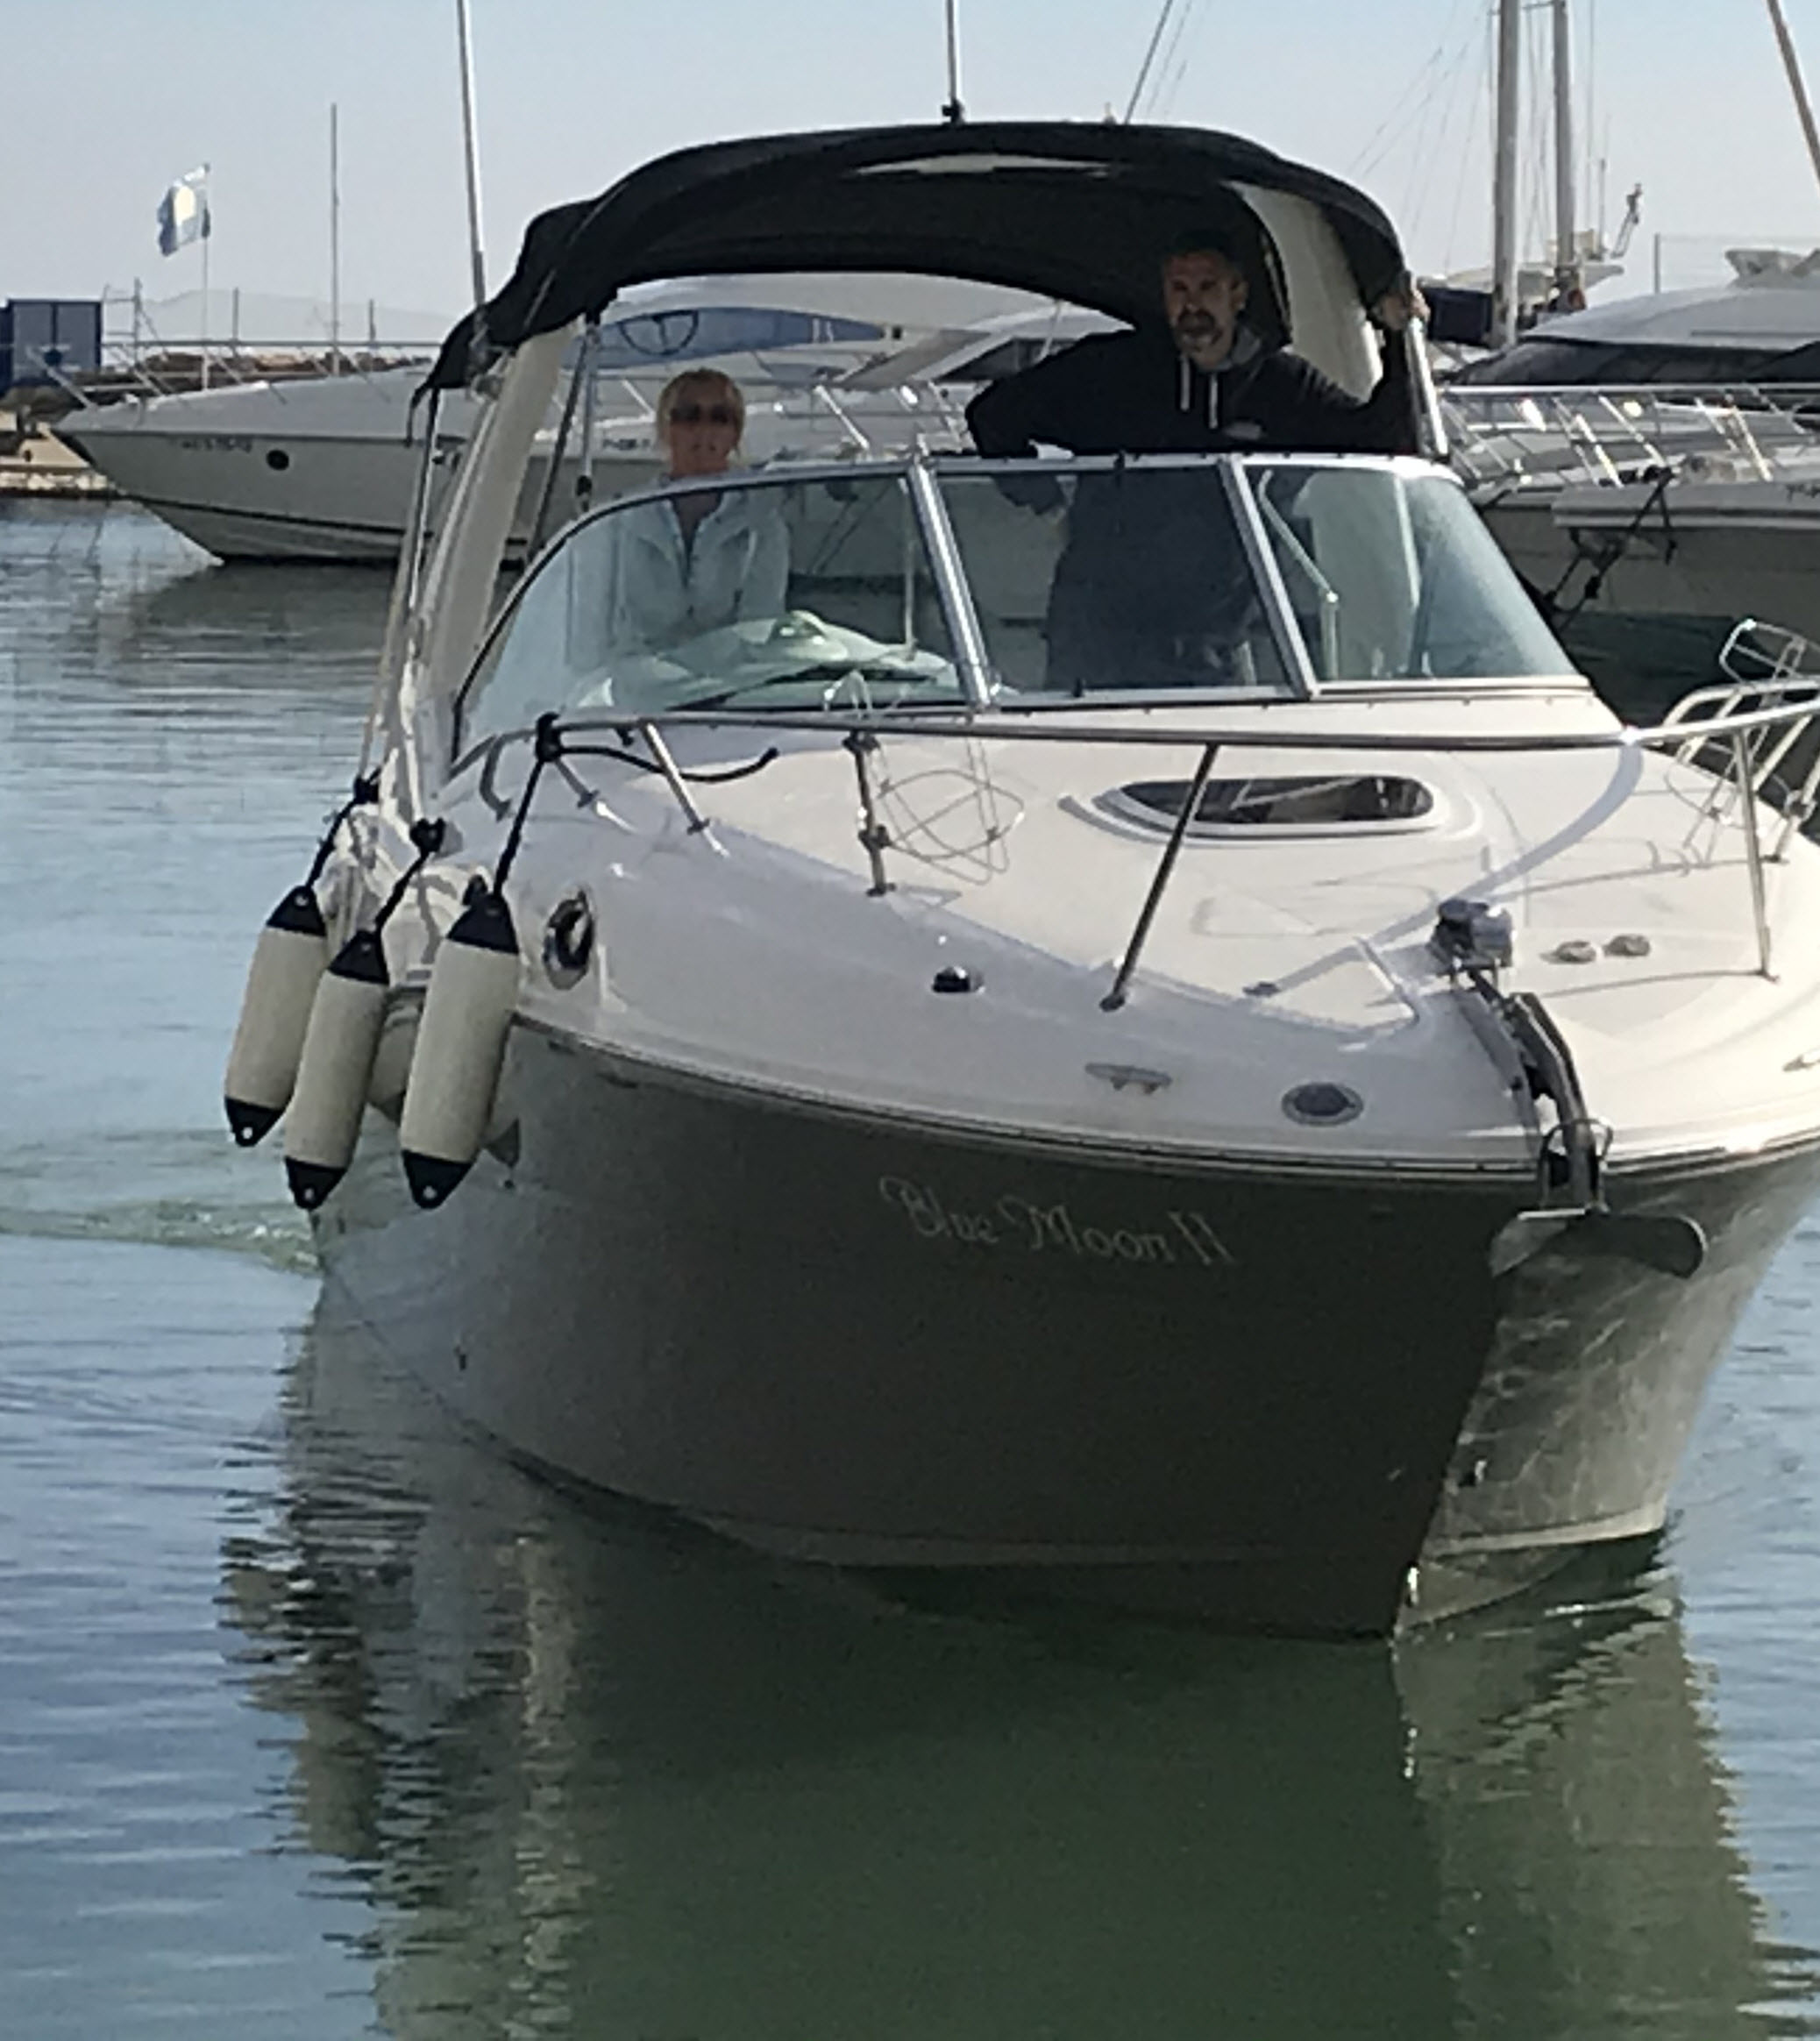 Manoeuvring around Campoamor Marina (Club Náutico Dehesa de Campoamor)  getting to know our new boat